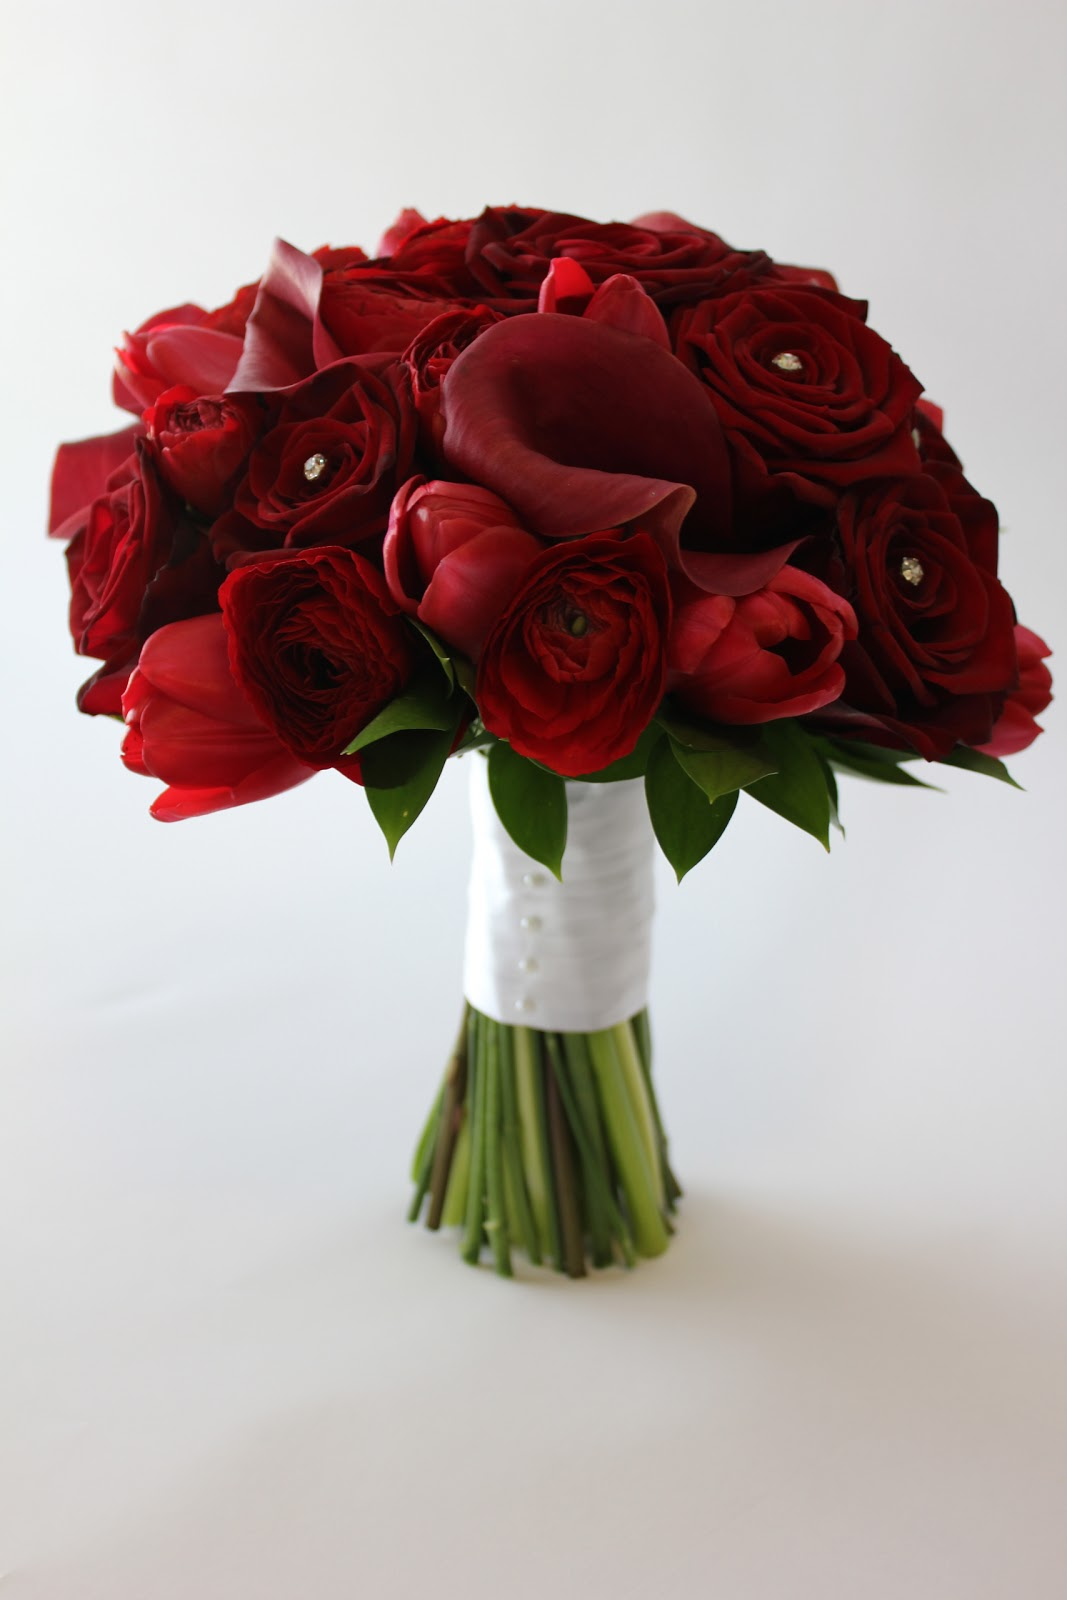 Broadview florist amanda and mark 39 s wedding for Wedding bouquet tulips and roses